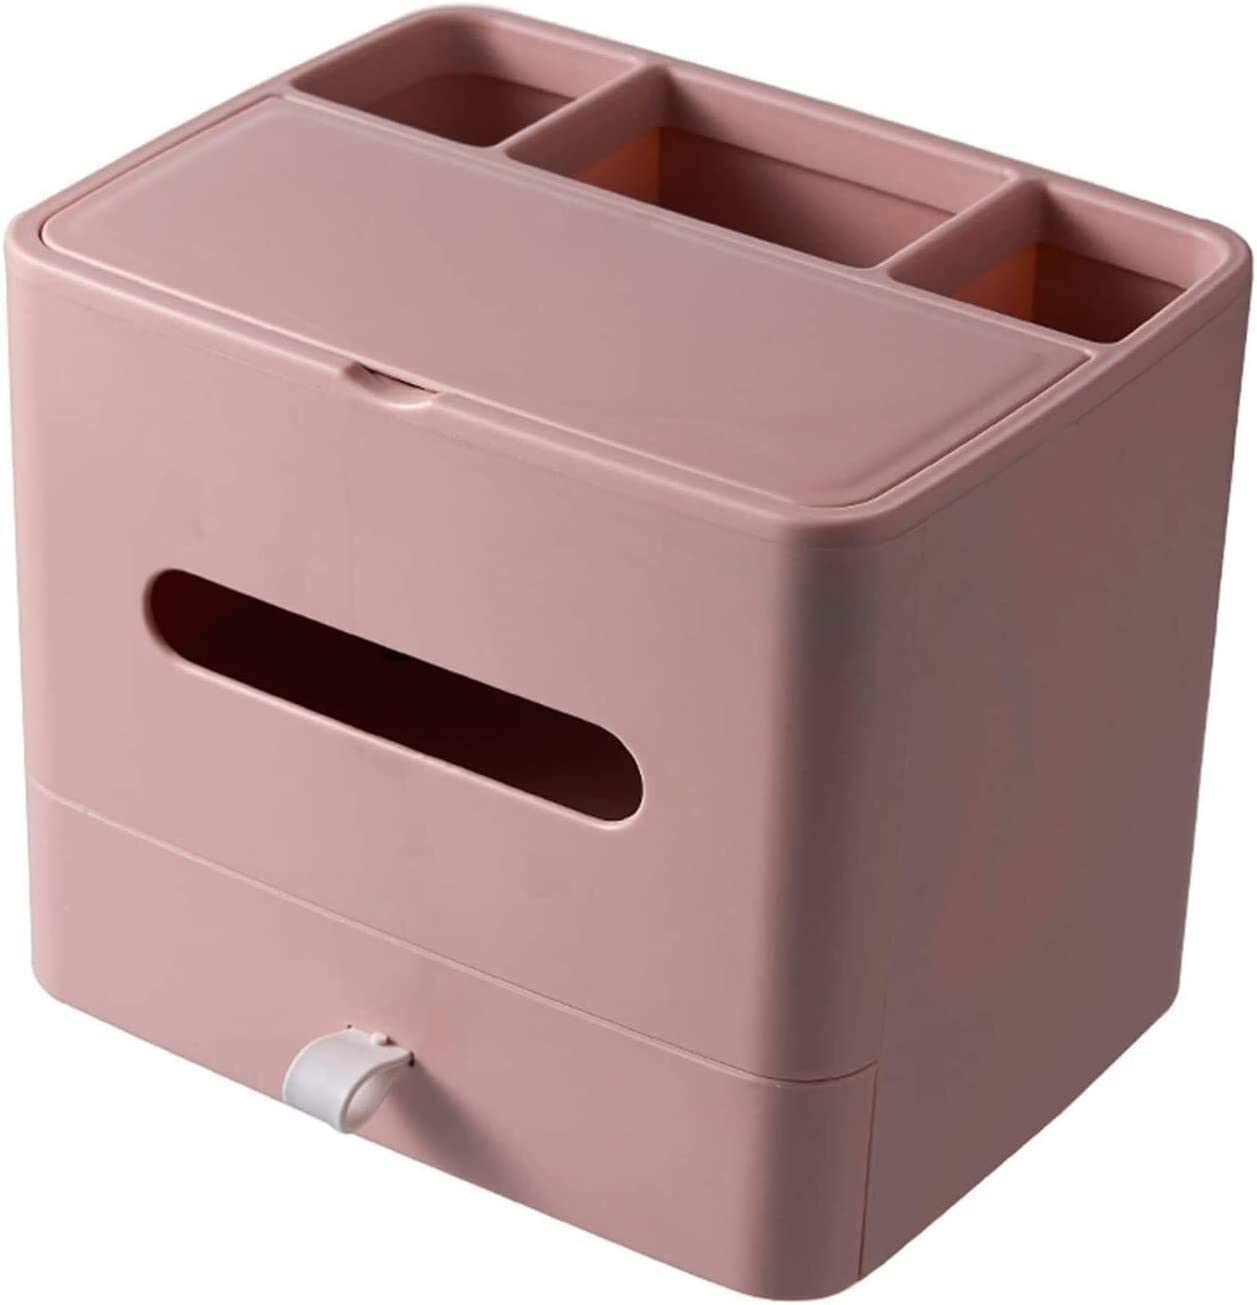 National uniform free shipping Cecorative Tissue Box Multifunctional D Holder Max 59% OFF